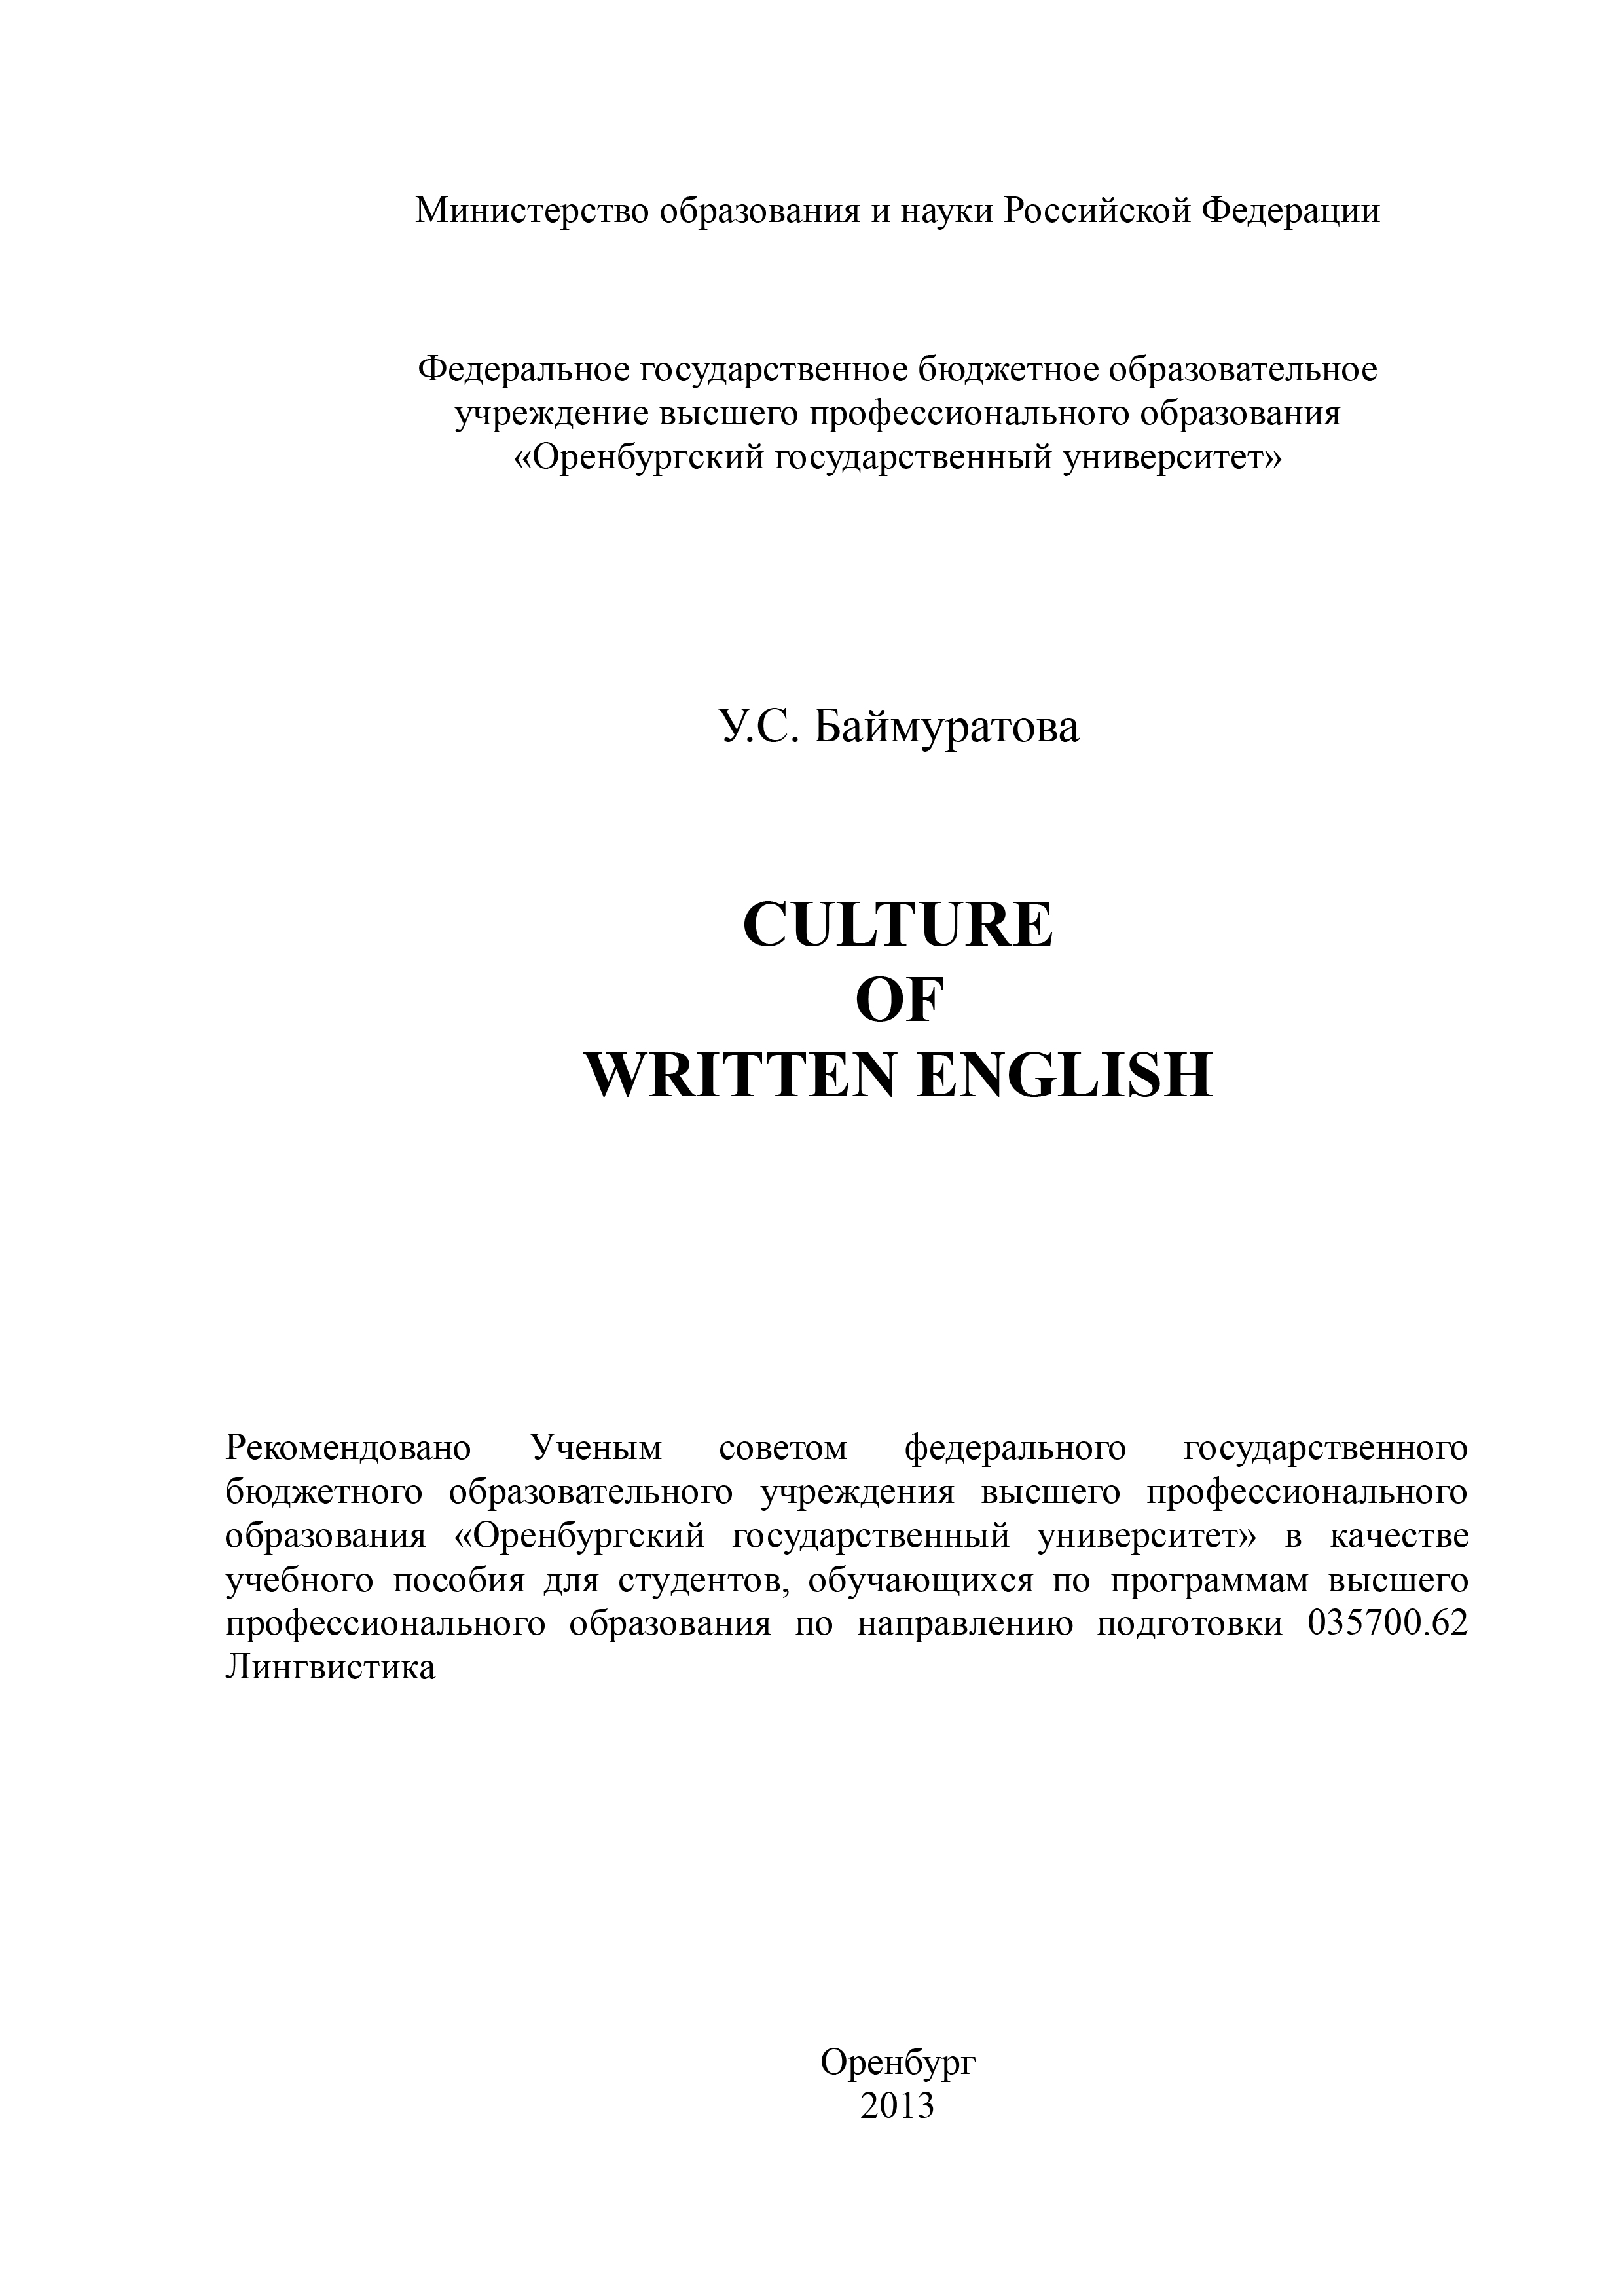 У. С. Баймуратова Culture of Written English у с баймуратова culture of written english